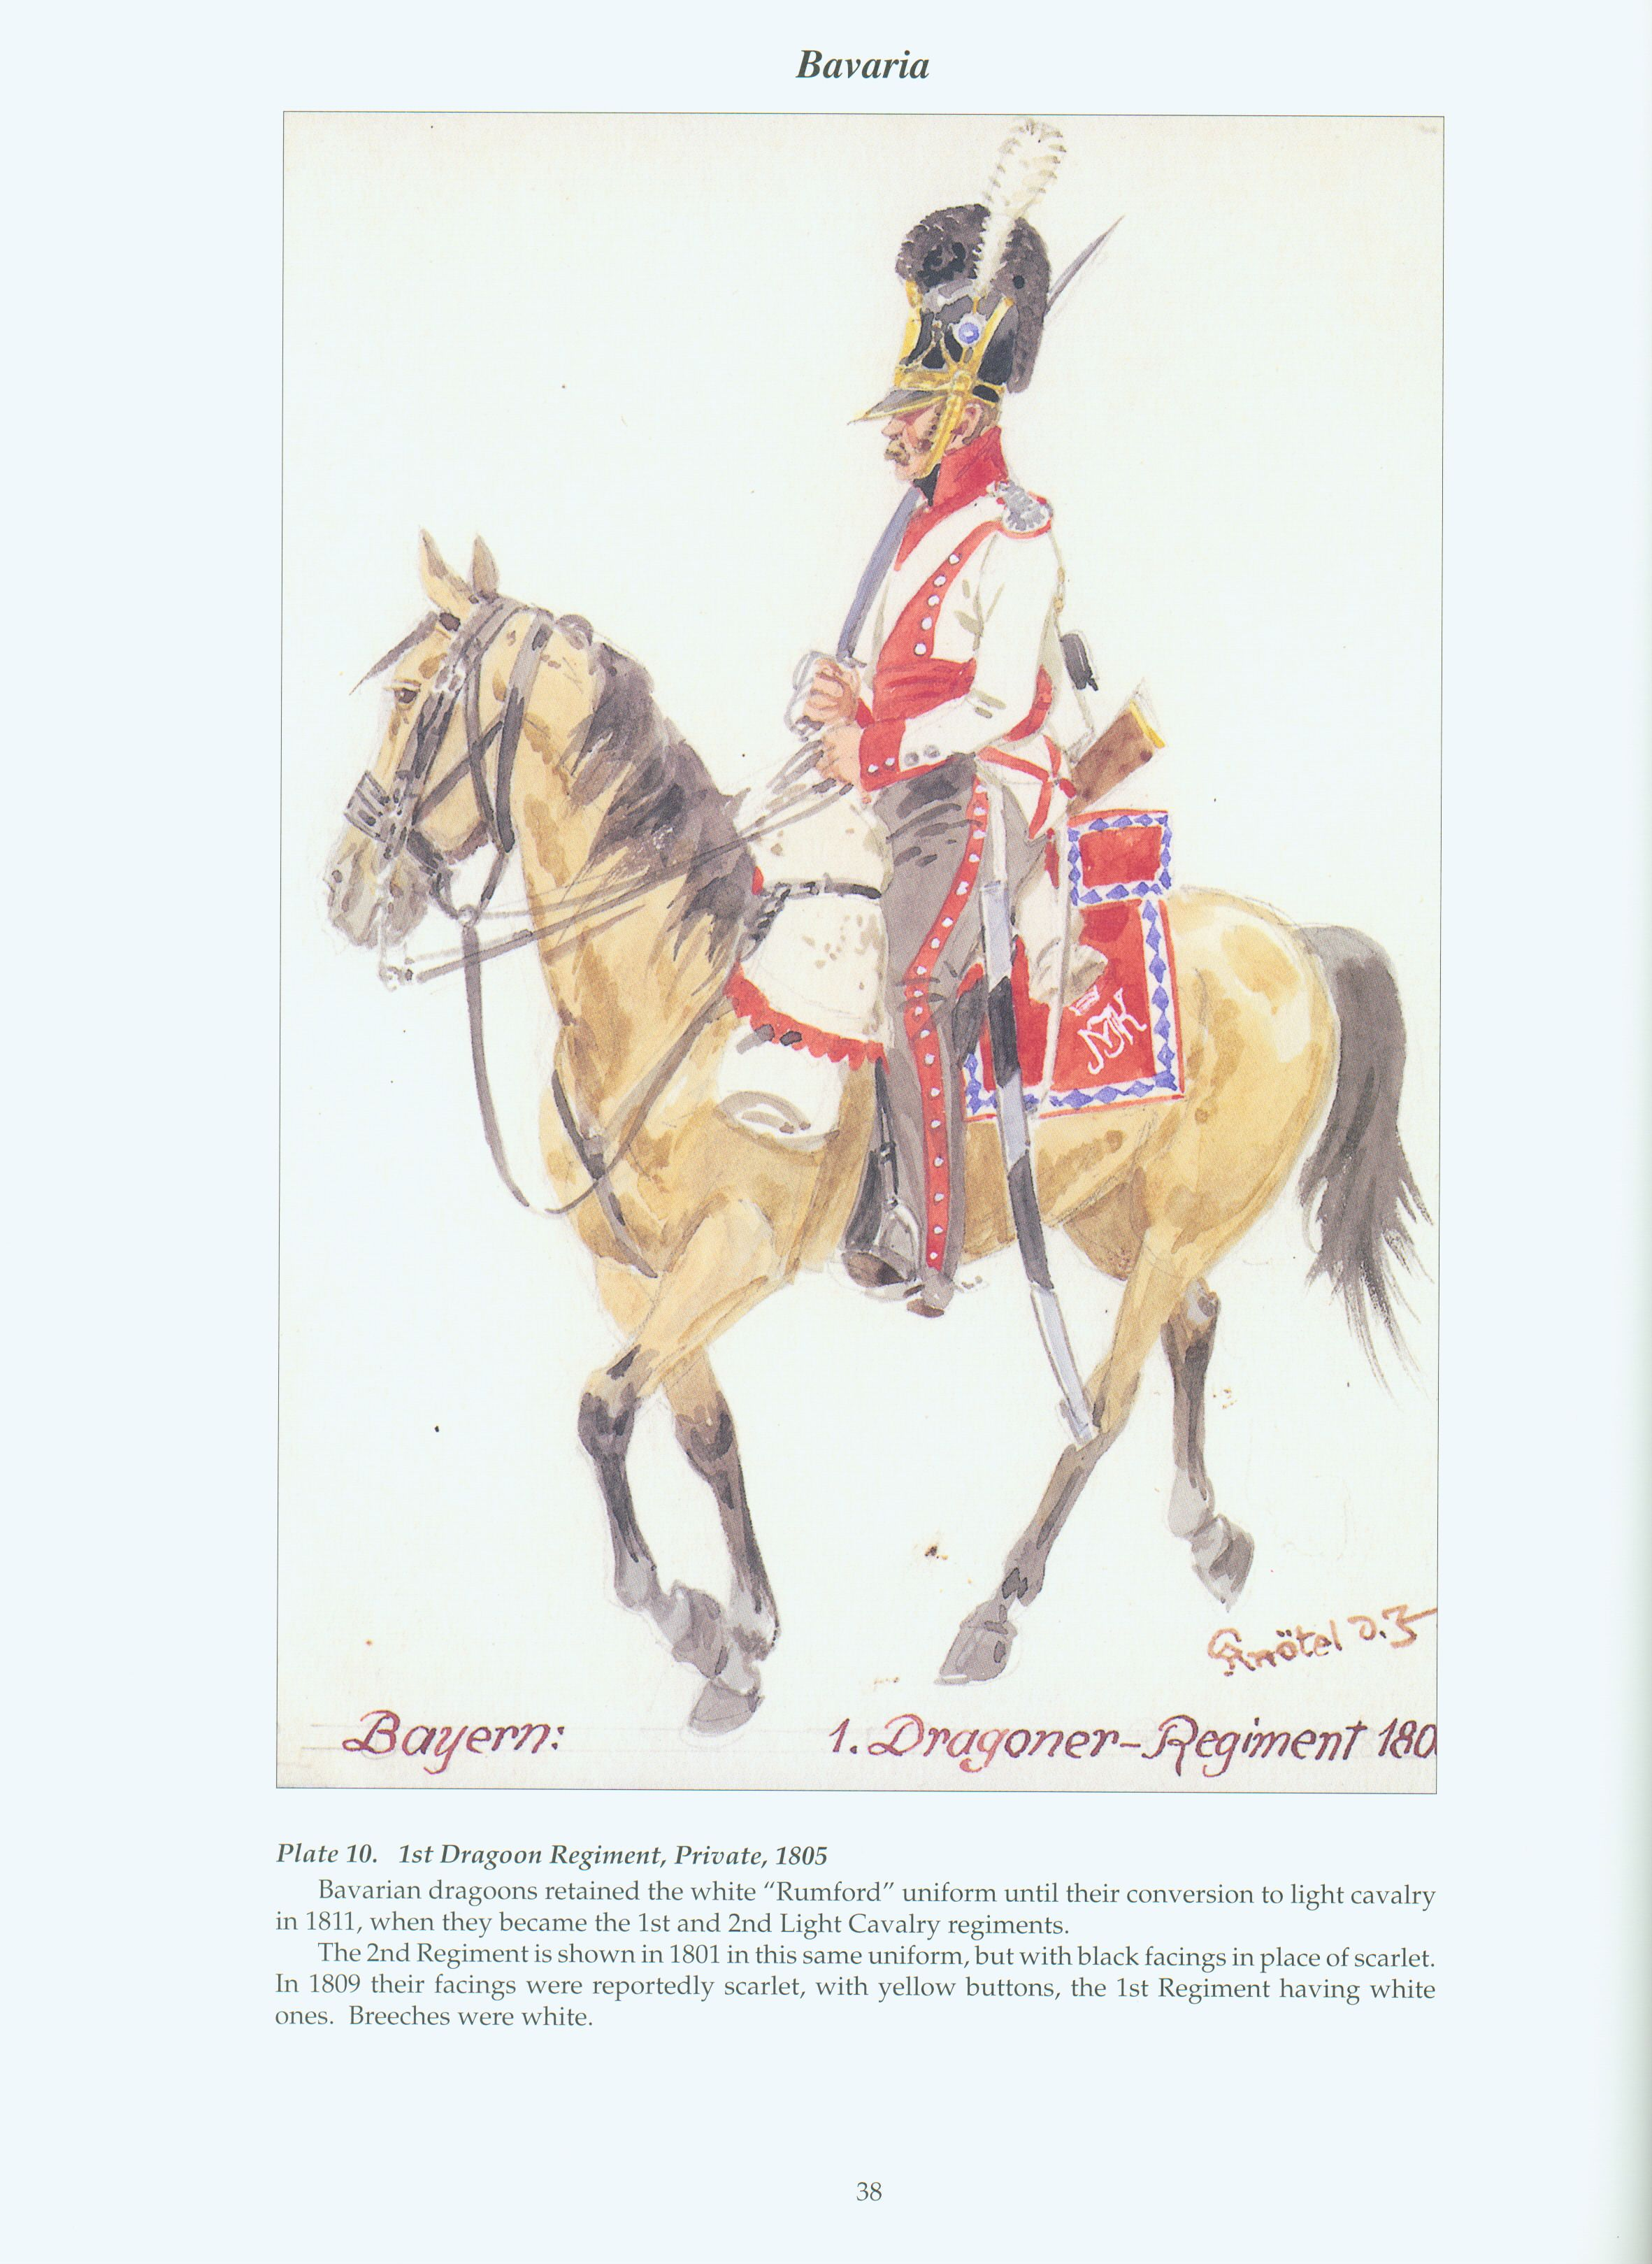 The Confederation of the Rhine - Bavaria: Plate 10. 1st Dragoon Regiment, Private, 1805